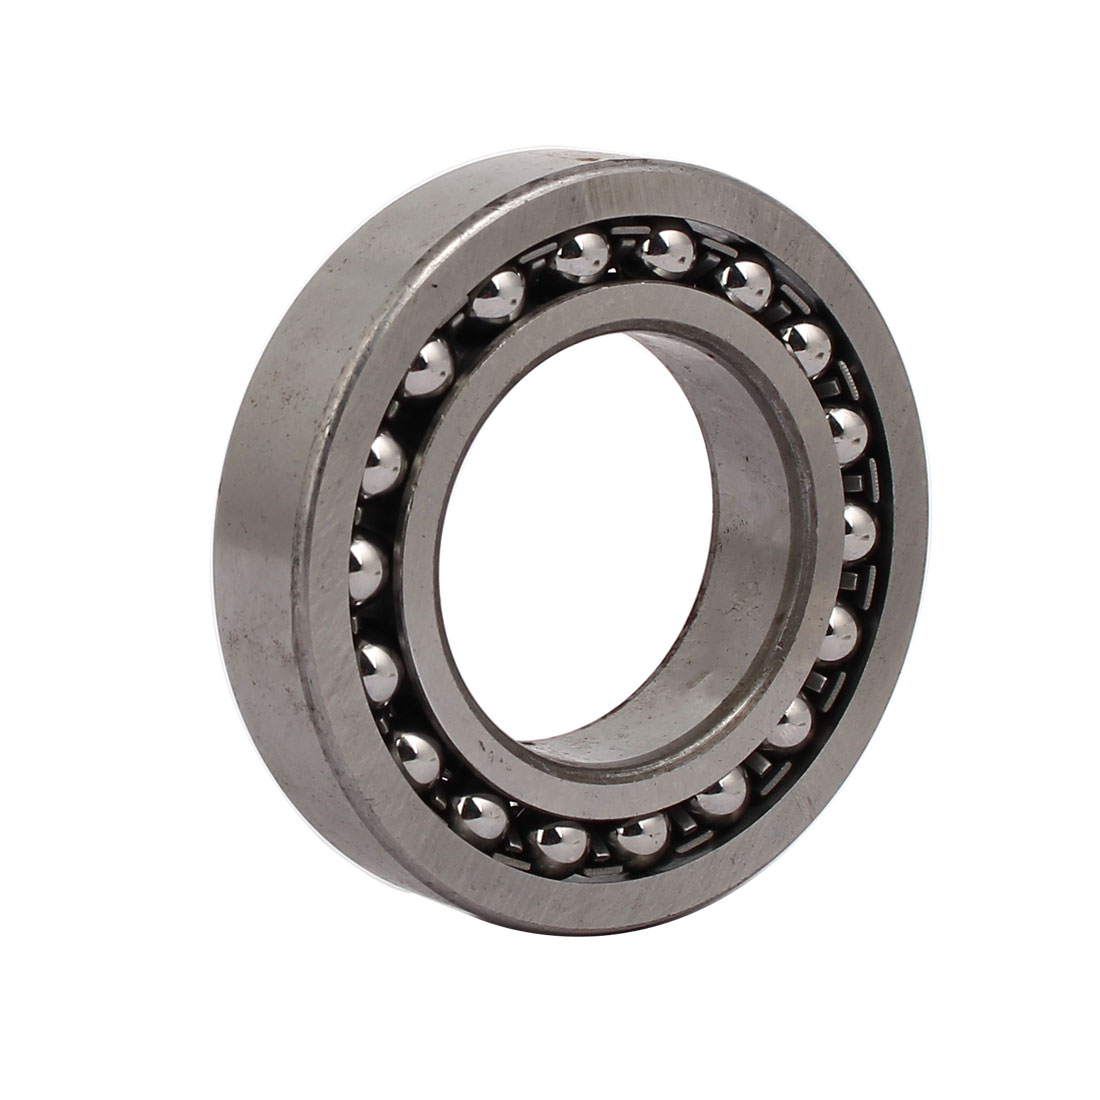 90mmx50mmx20mm 1210 Double Row Self-Aligning Ball Bearing Silver Tone